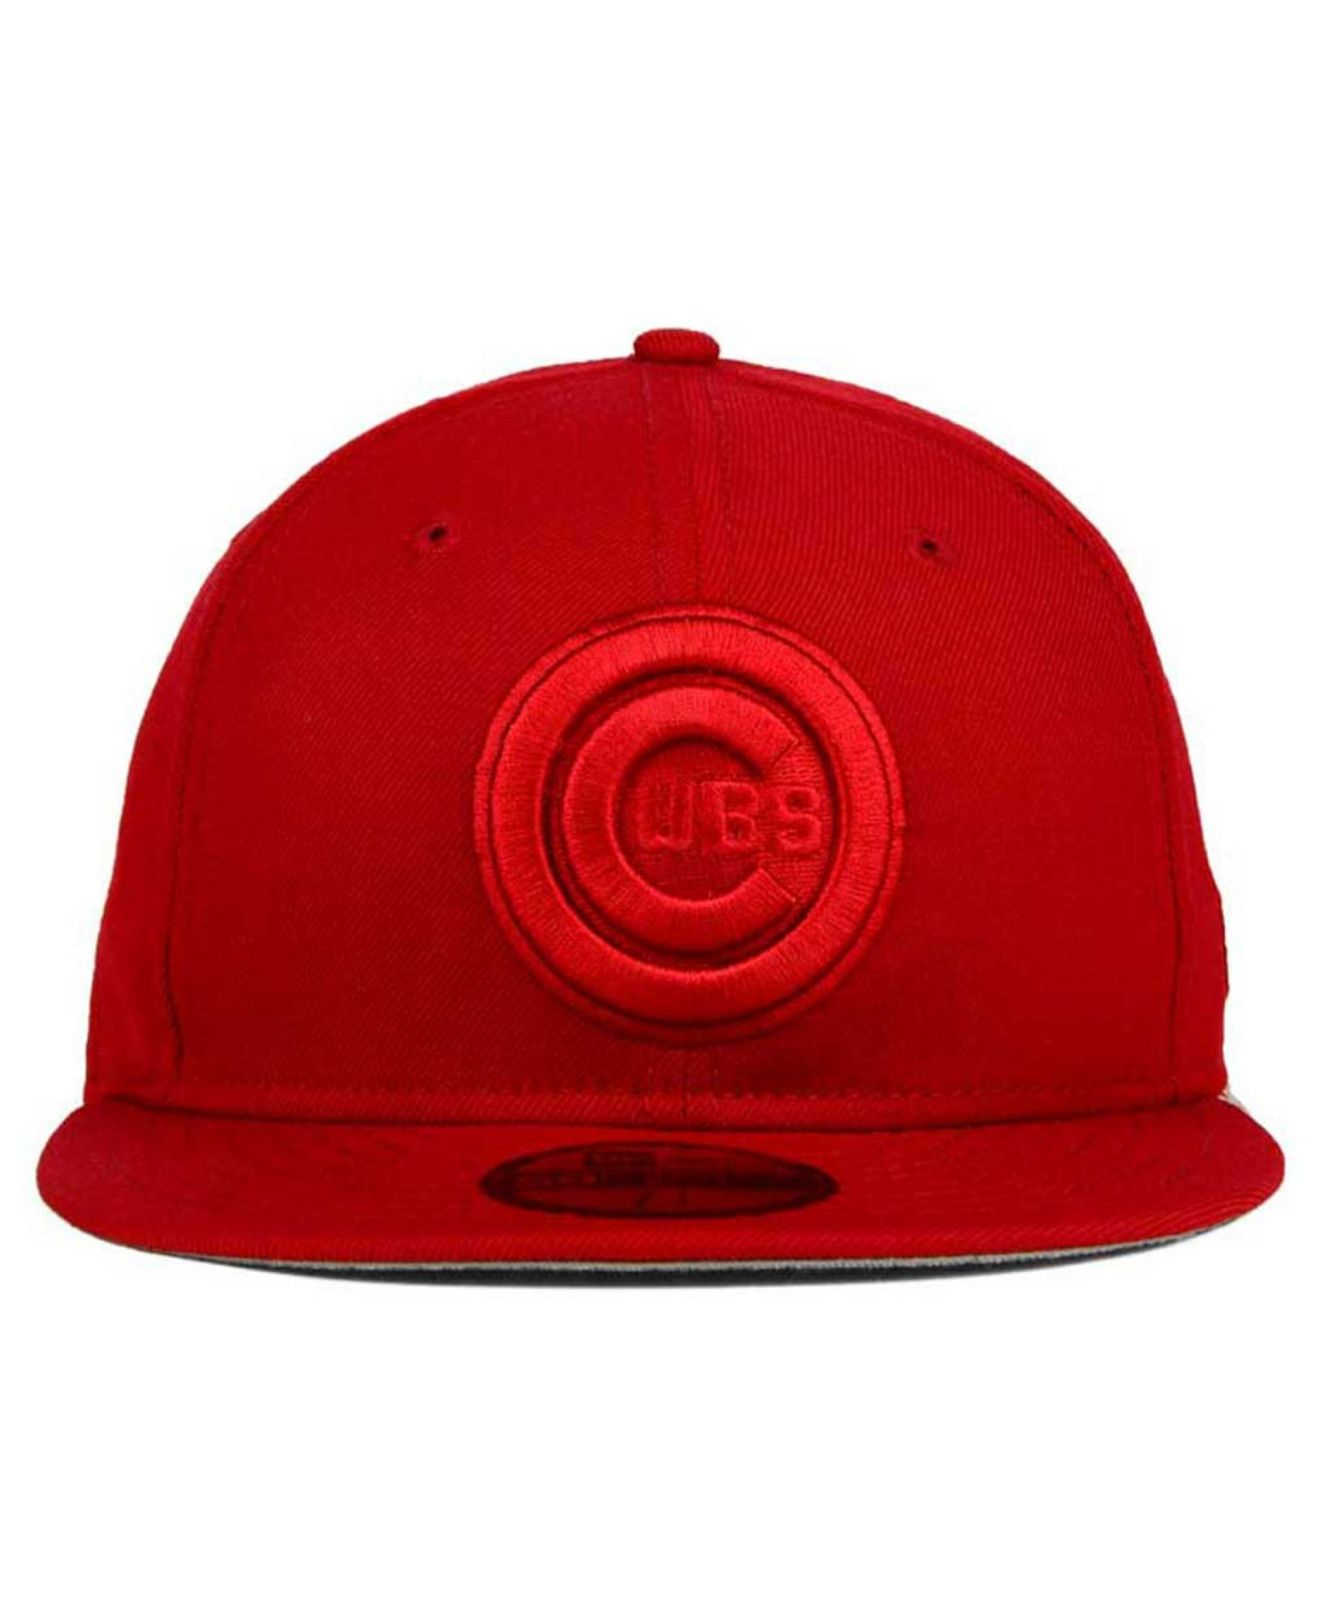 cadd57bff5a Lyst - Ktz Chicago Cubs Ton-wool 59fifty Cap in Red for Men